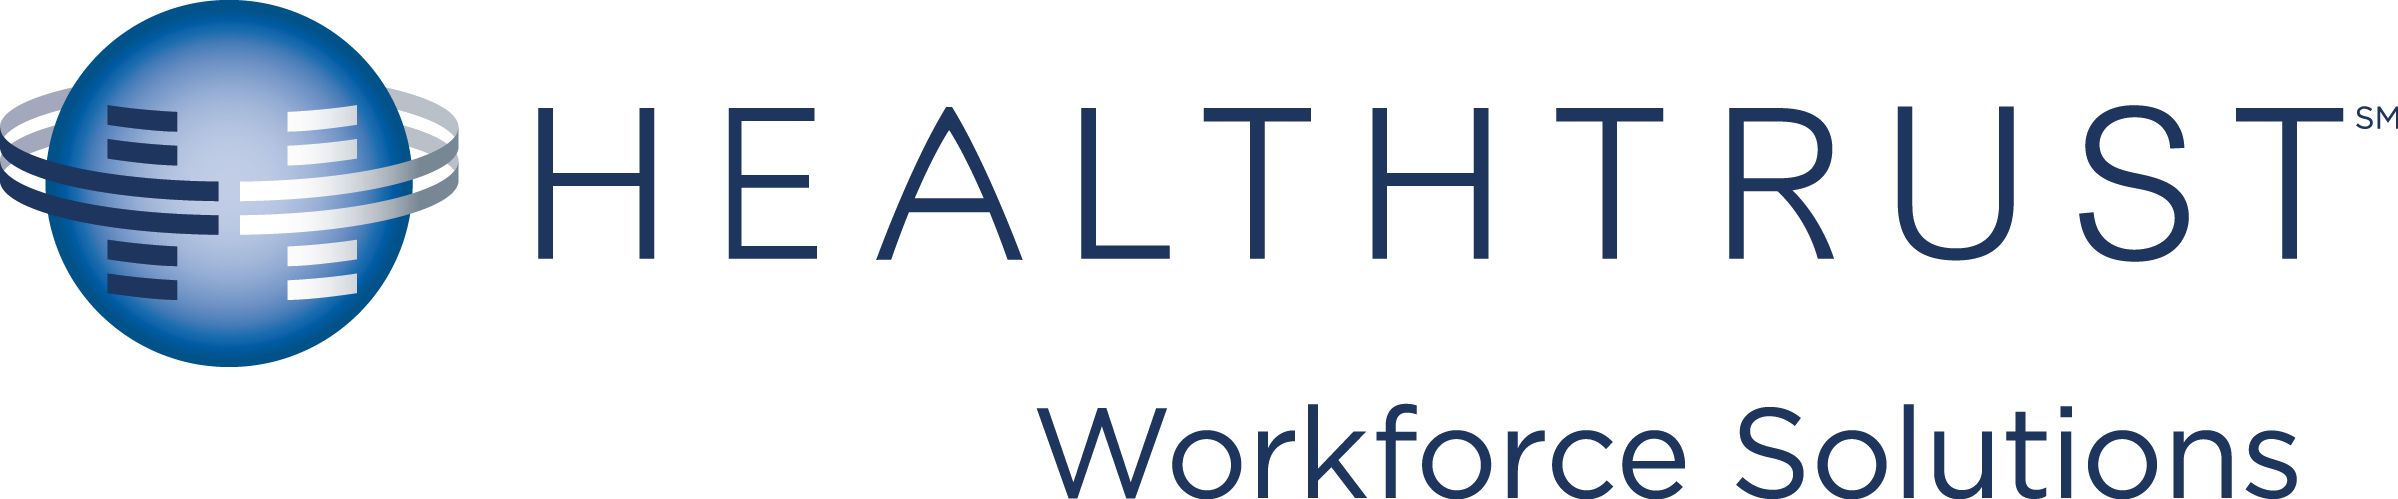 HealthTrust_Workforce_logo_hor_3C_pos.png